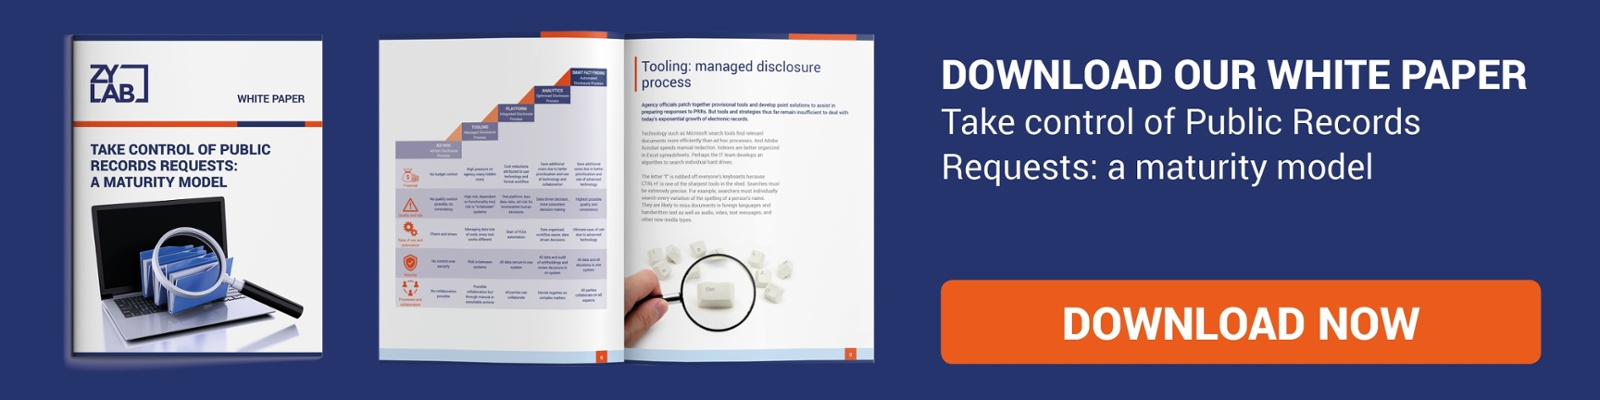 Take control of Public Records Requests: Download Whitepaper